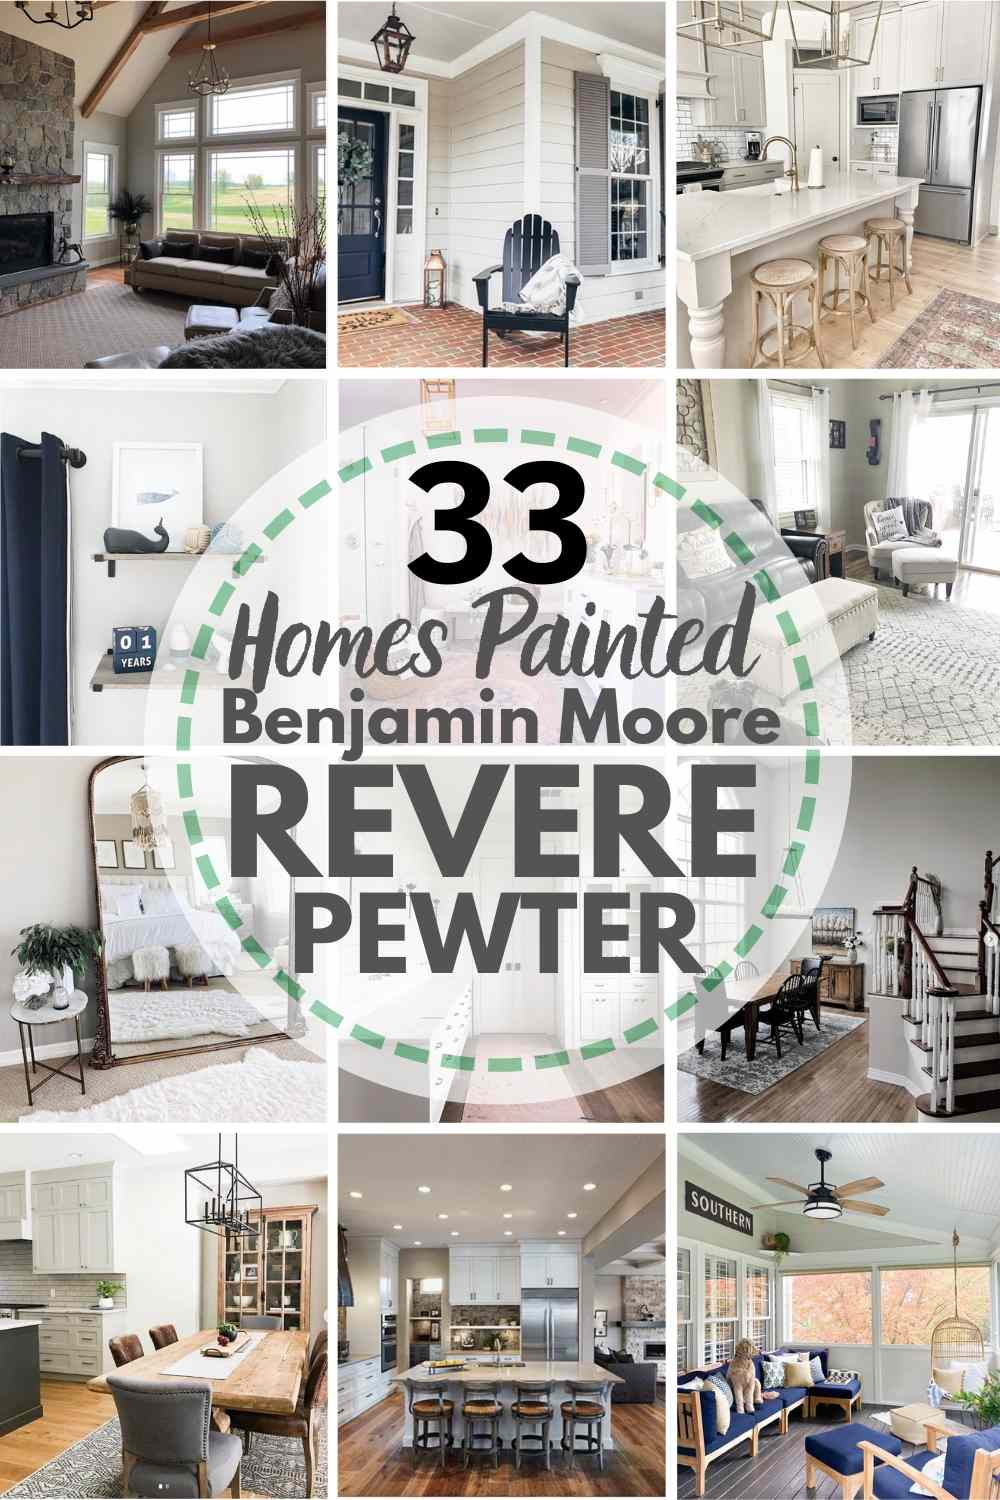 33 Homes Painted in Benjamin Moore Revere Pewter